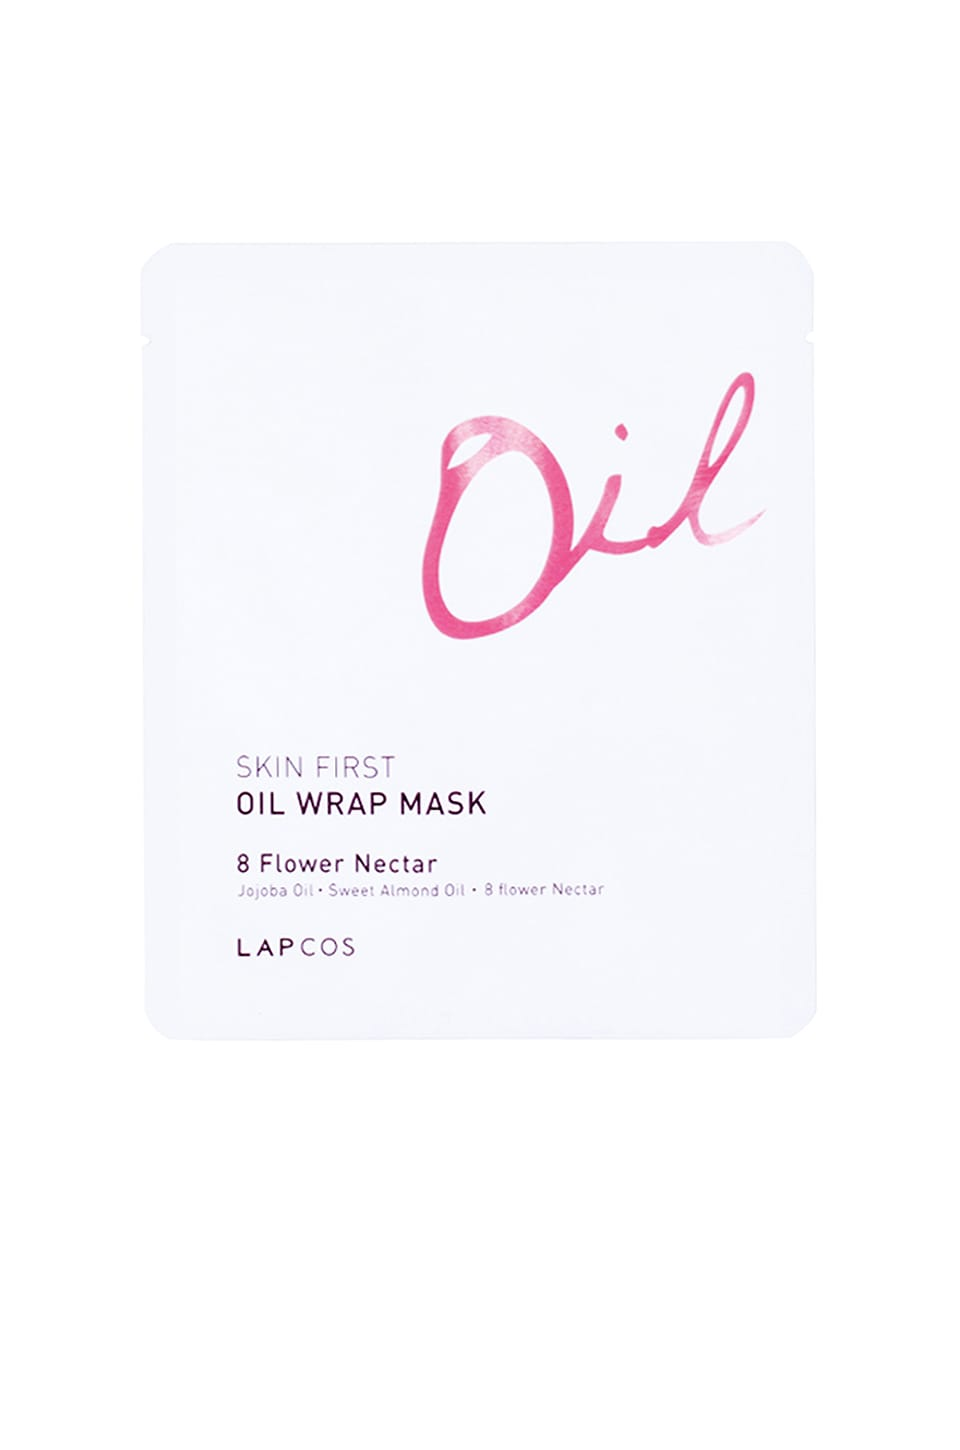 LAPCOS SKIN FIRST OIL WRAP MASK NO 1